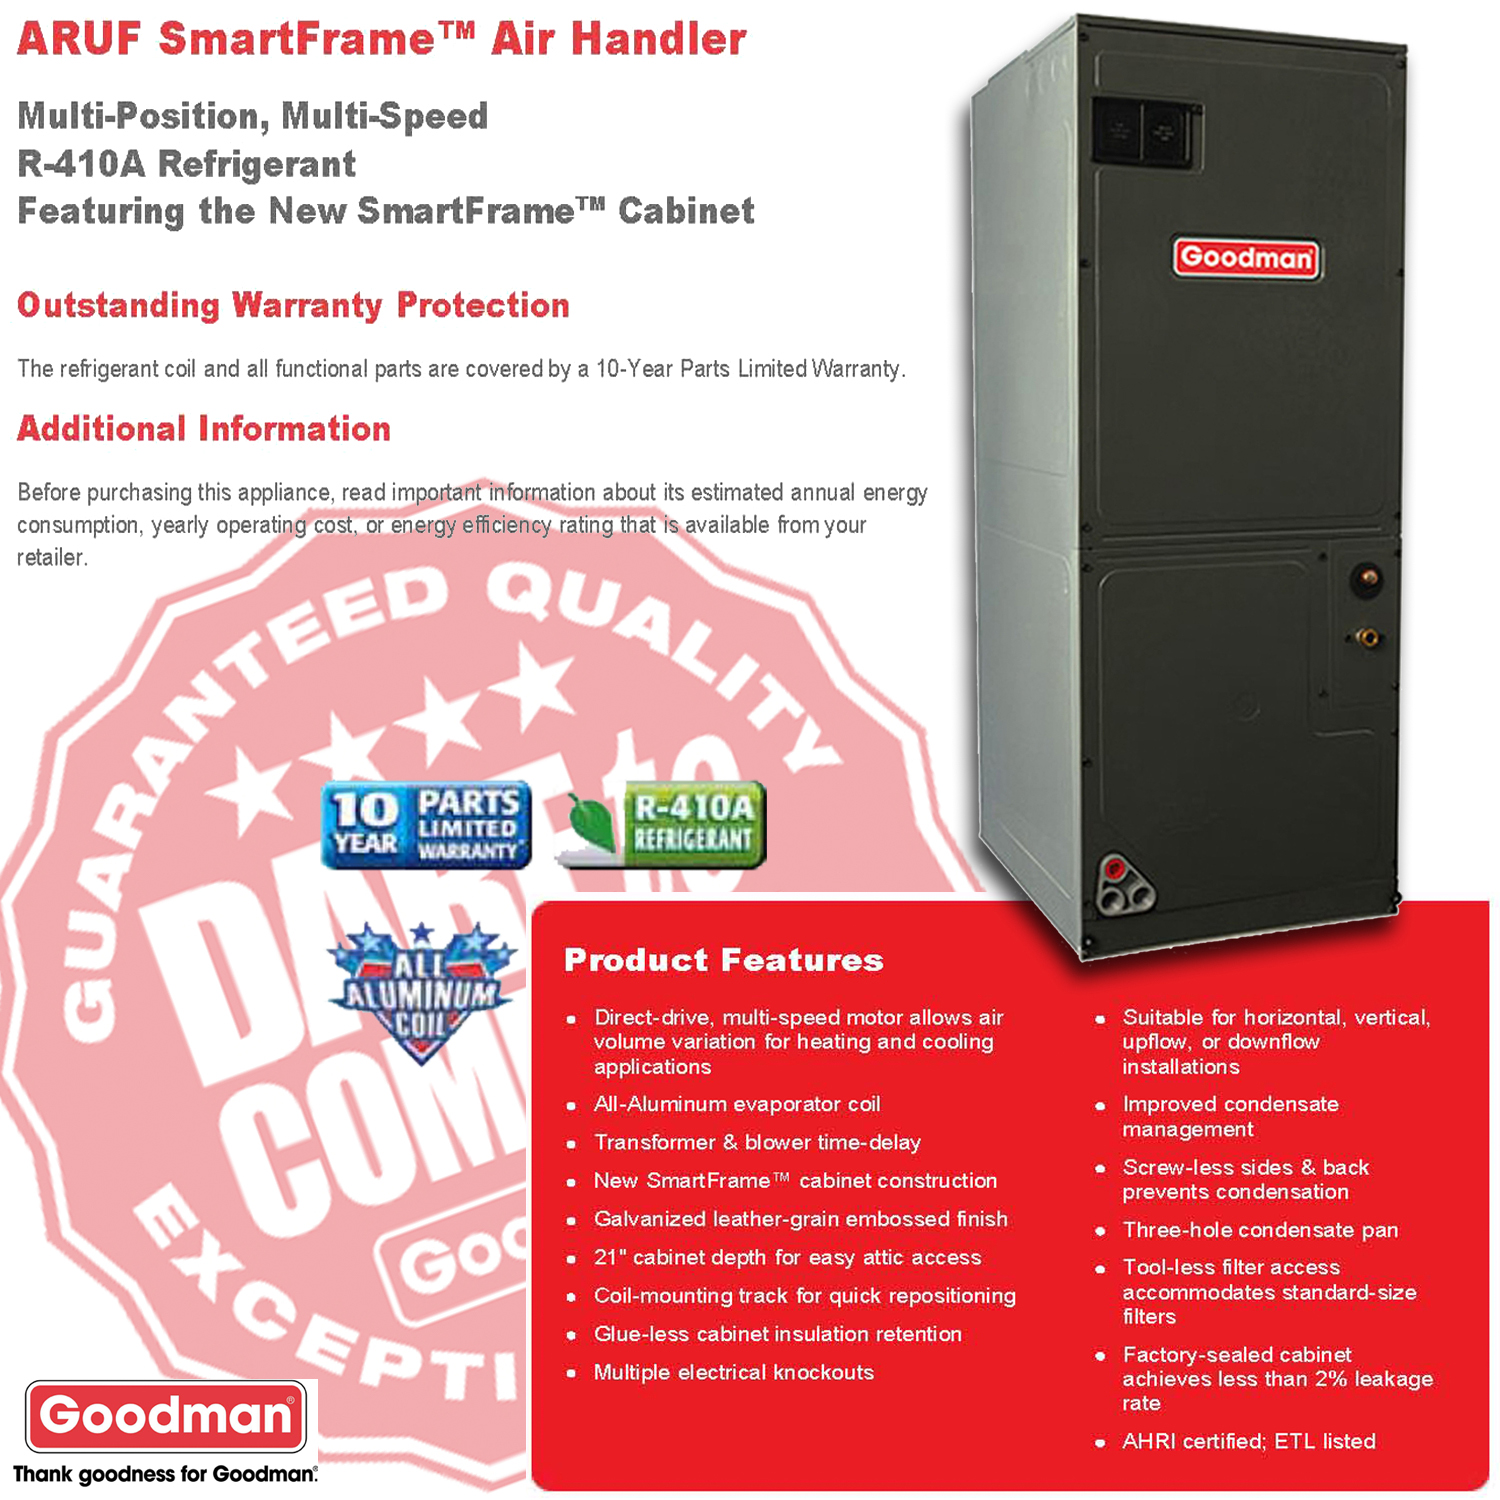 ARUF SMART BROCHURE 2 3 0 ton goodman smartframe central indoor air handler aruf37c14 aruf wiring diagram at gsmportal.co